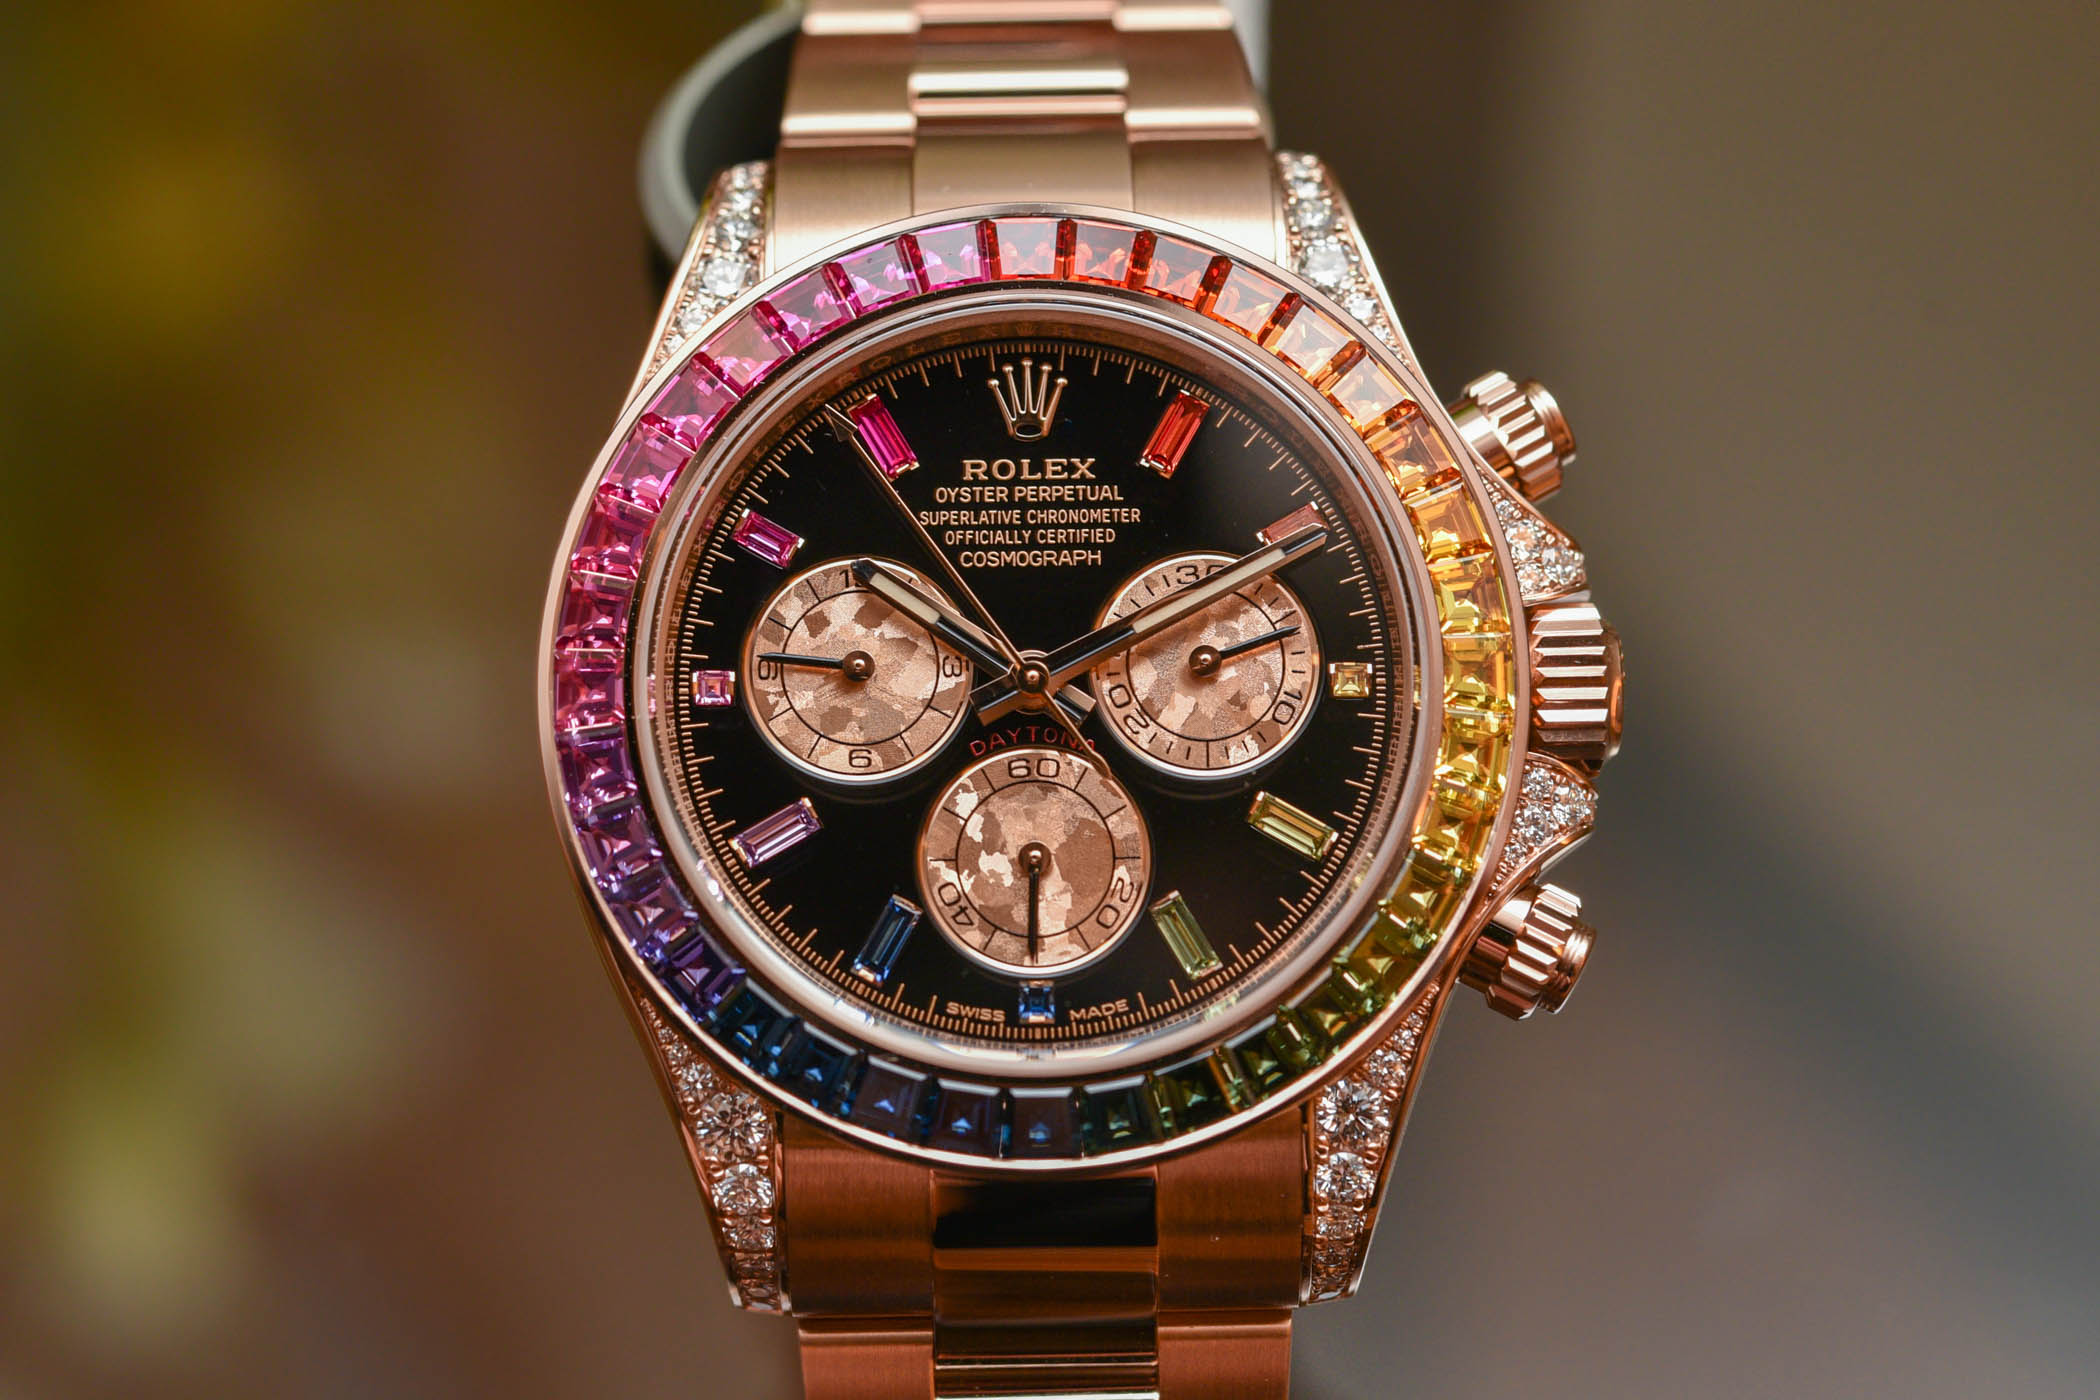 goi-y-lua-chon-dong-ho-rolex-like-auth-11-don-he-them-soi-dong-4